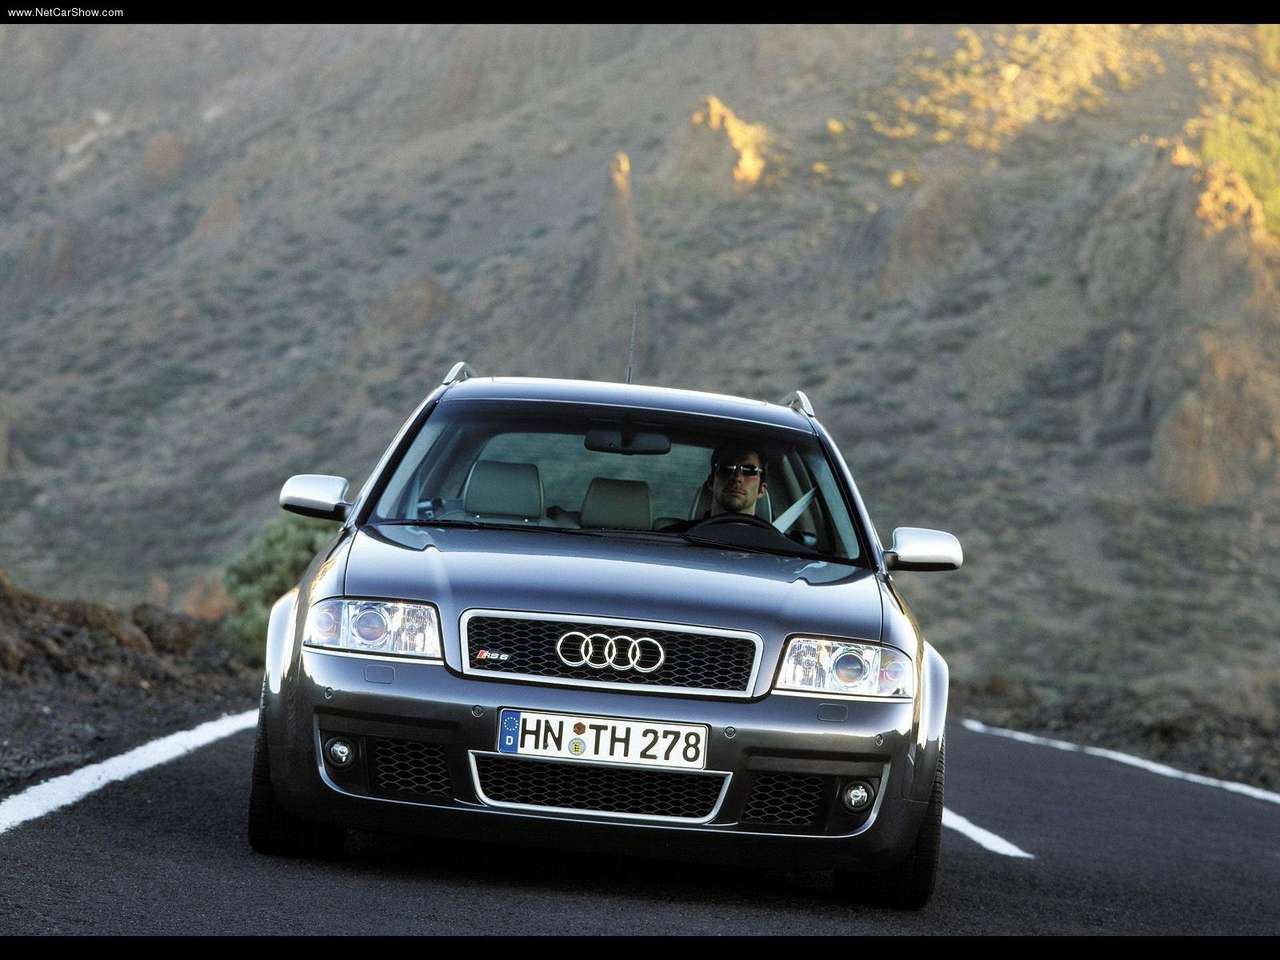 5 Reasons Why The Audi Rs6 C5 Is Better Than The Bmw M5